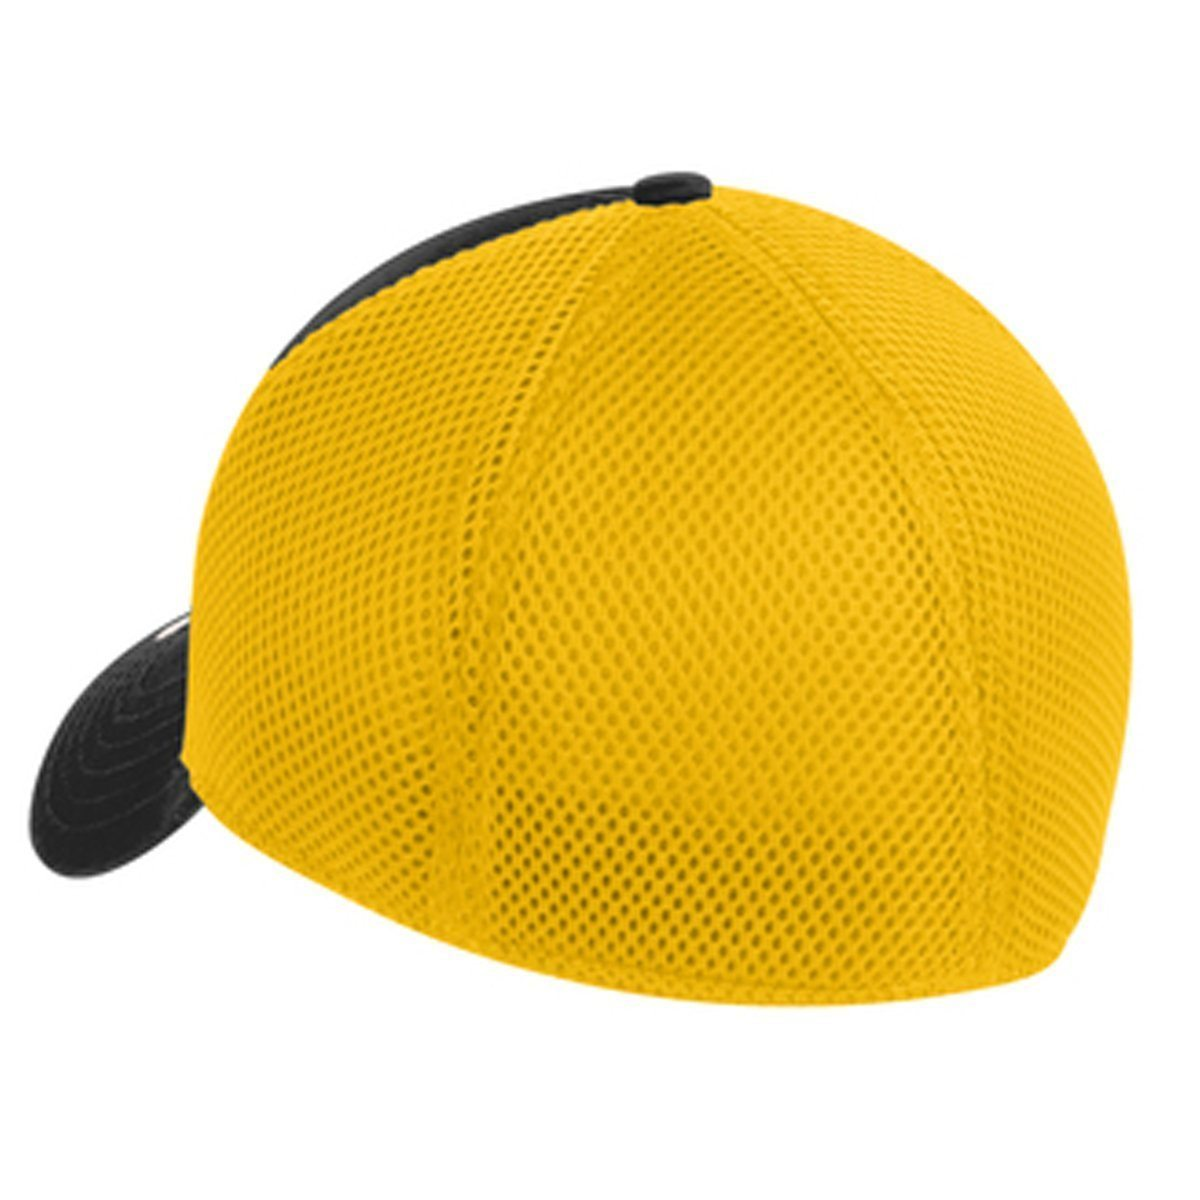 Don't Tread On Me Stretch Mesh New Era Hat - Center Embroidery - Discontinued